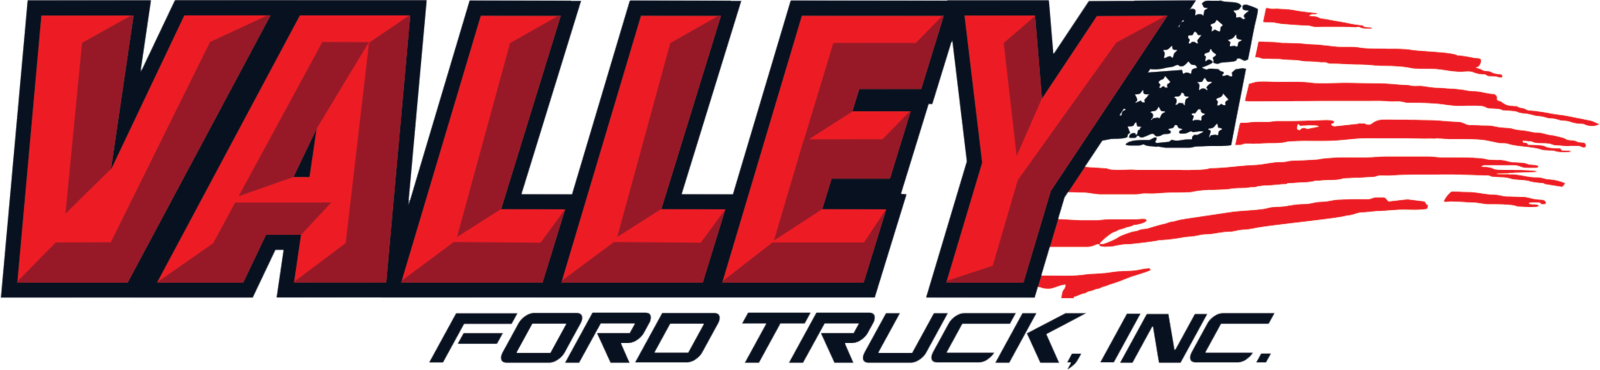 Jeep Dealers Cleveland >> Valley Ford Truck, Inc. - Cleveland, OH - Reviews & Deals ...